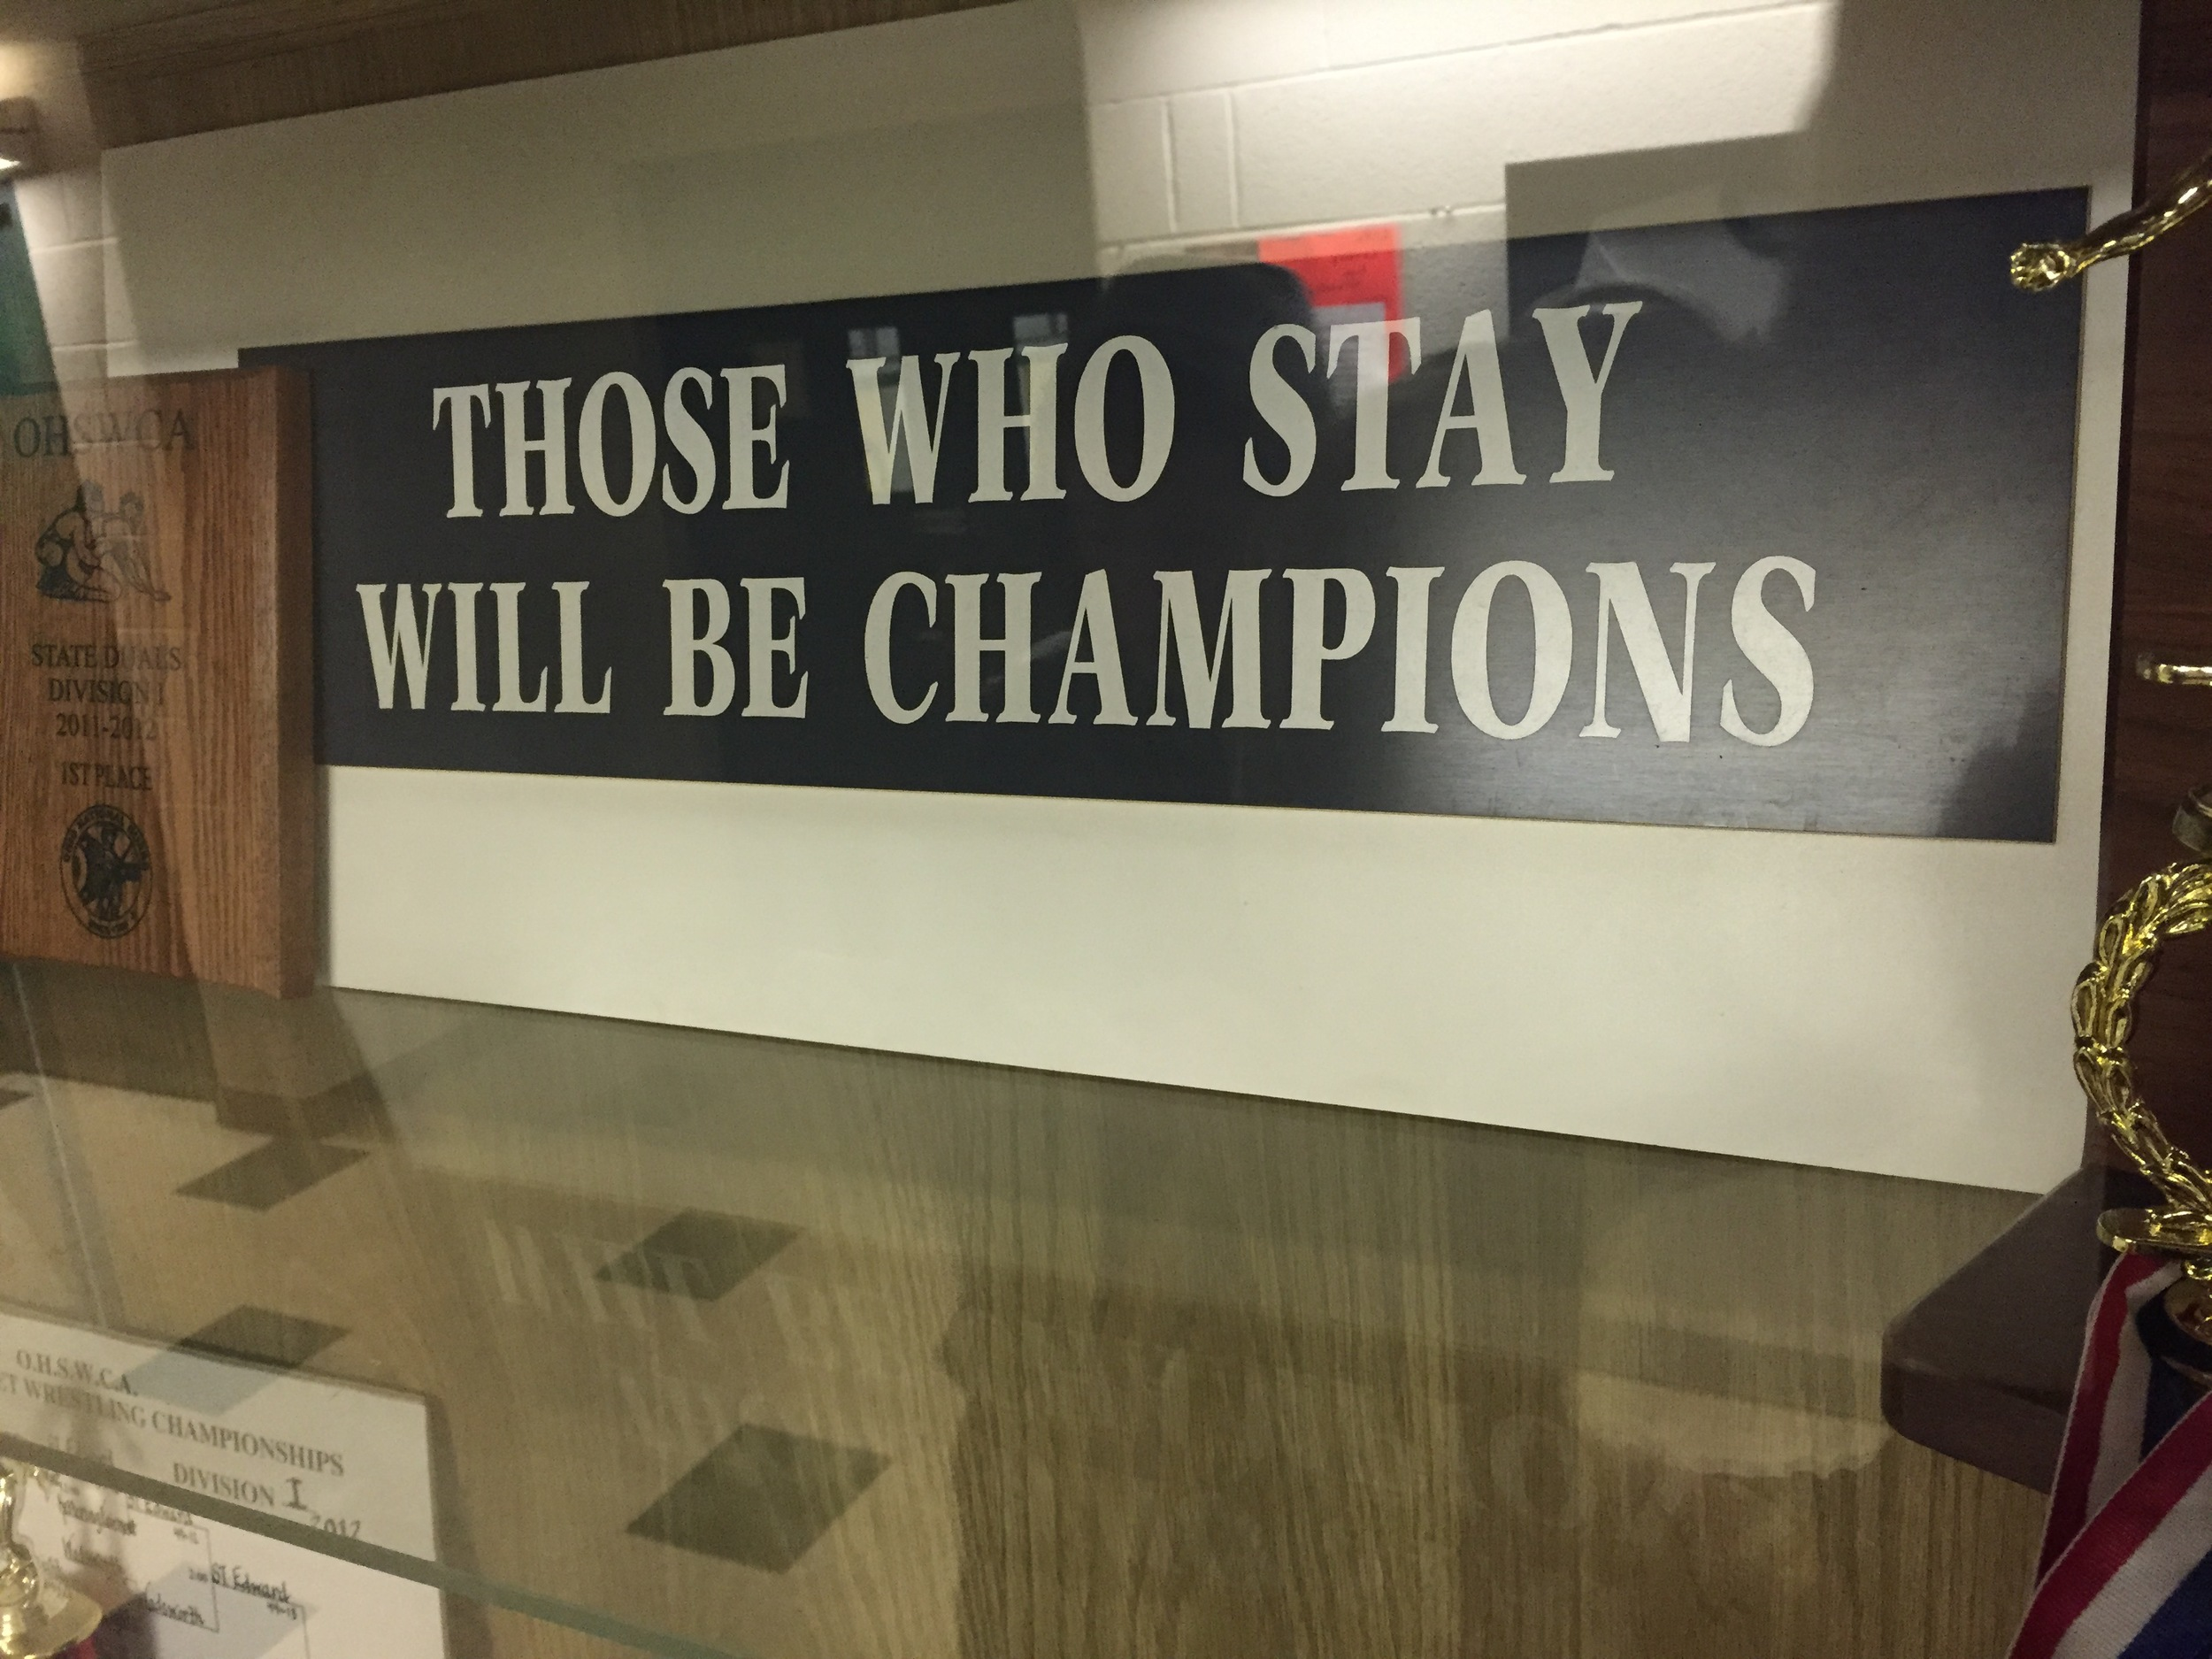 A sign I saw at St Edwards wrestling room.  Mediocrity is not tolerated there.